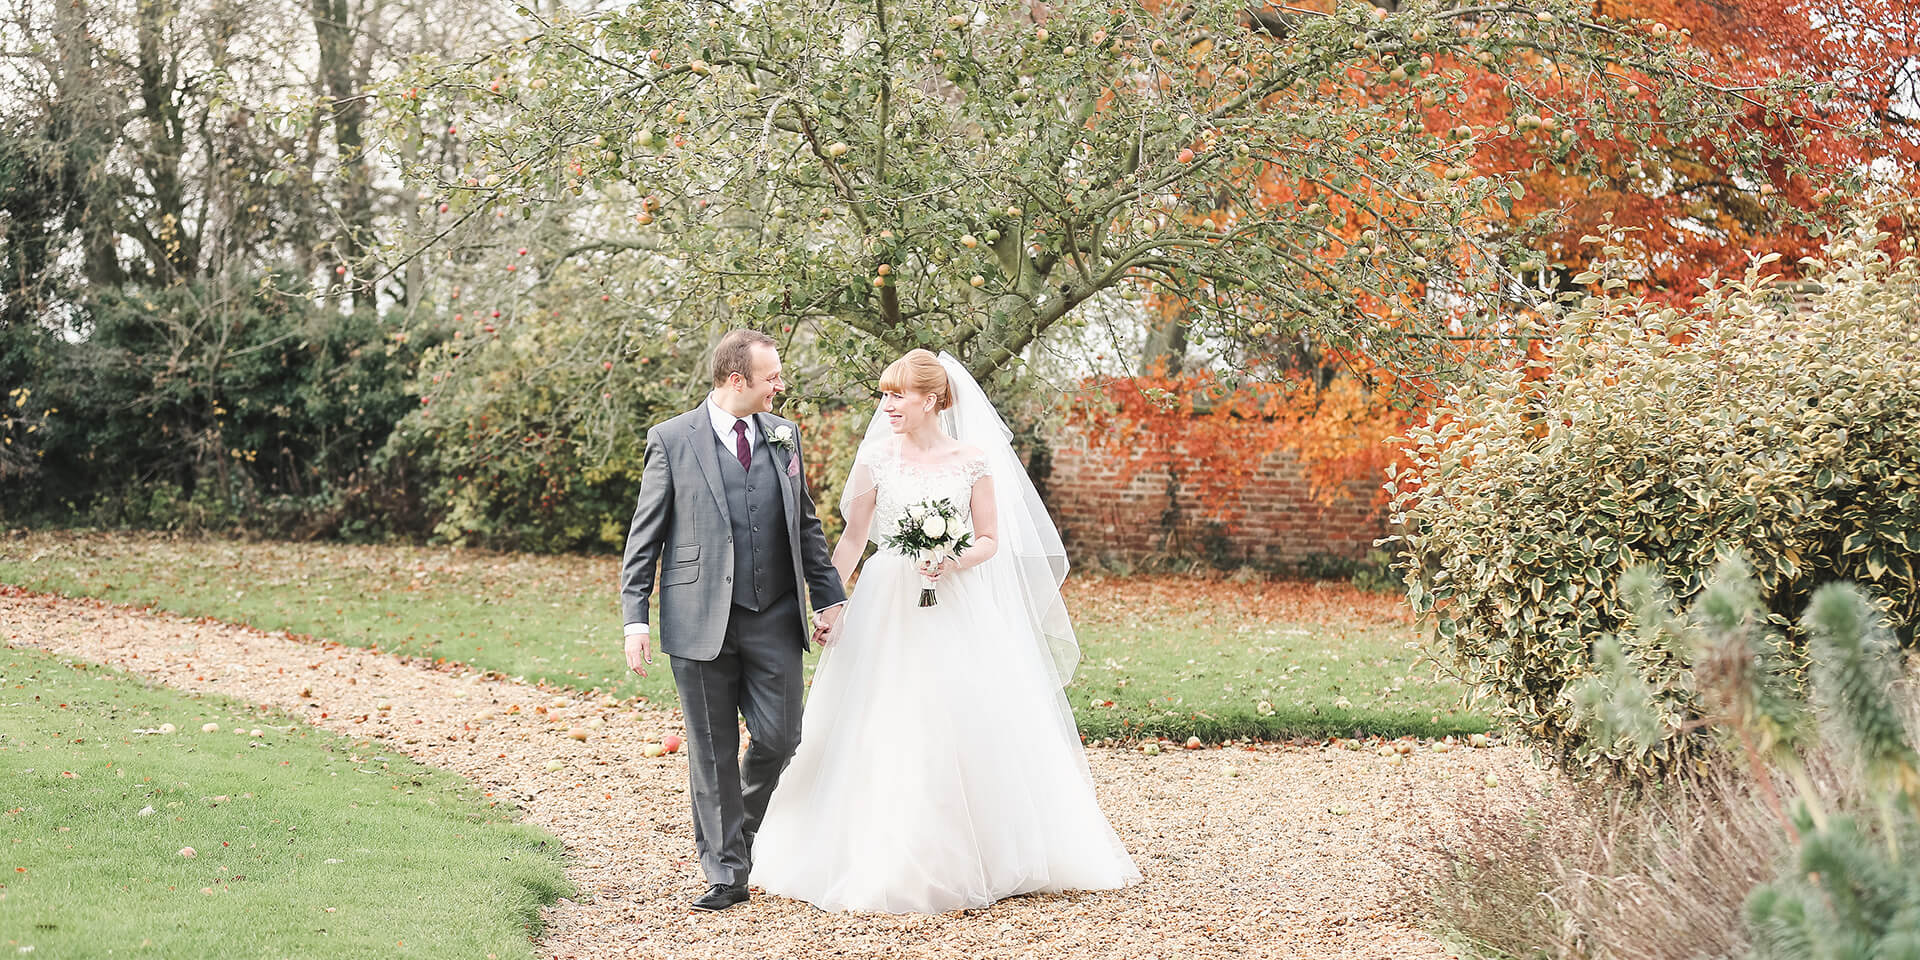 Autumn in the Manor Grounds for Kirsty and Richard. Captured by Cream Photography.